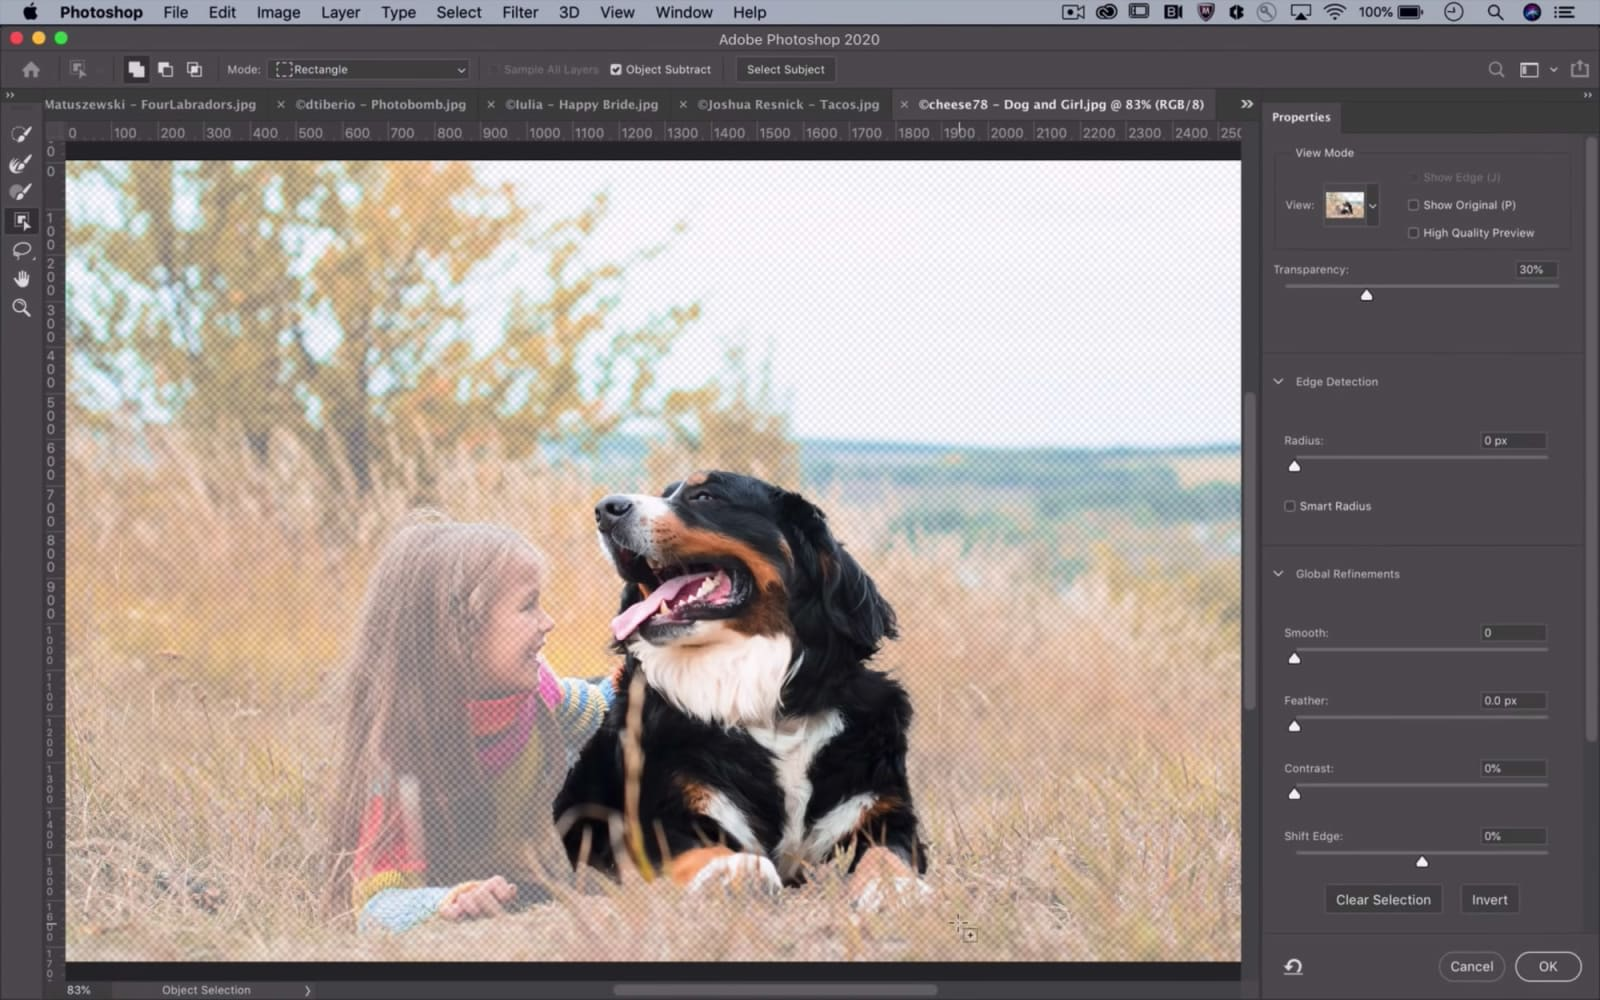 Adobe's advanced AI editing tools graduate to Creative Cloud apps